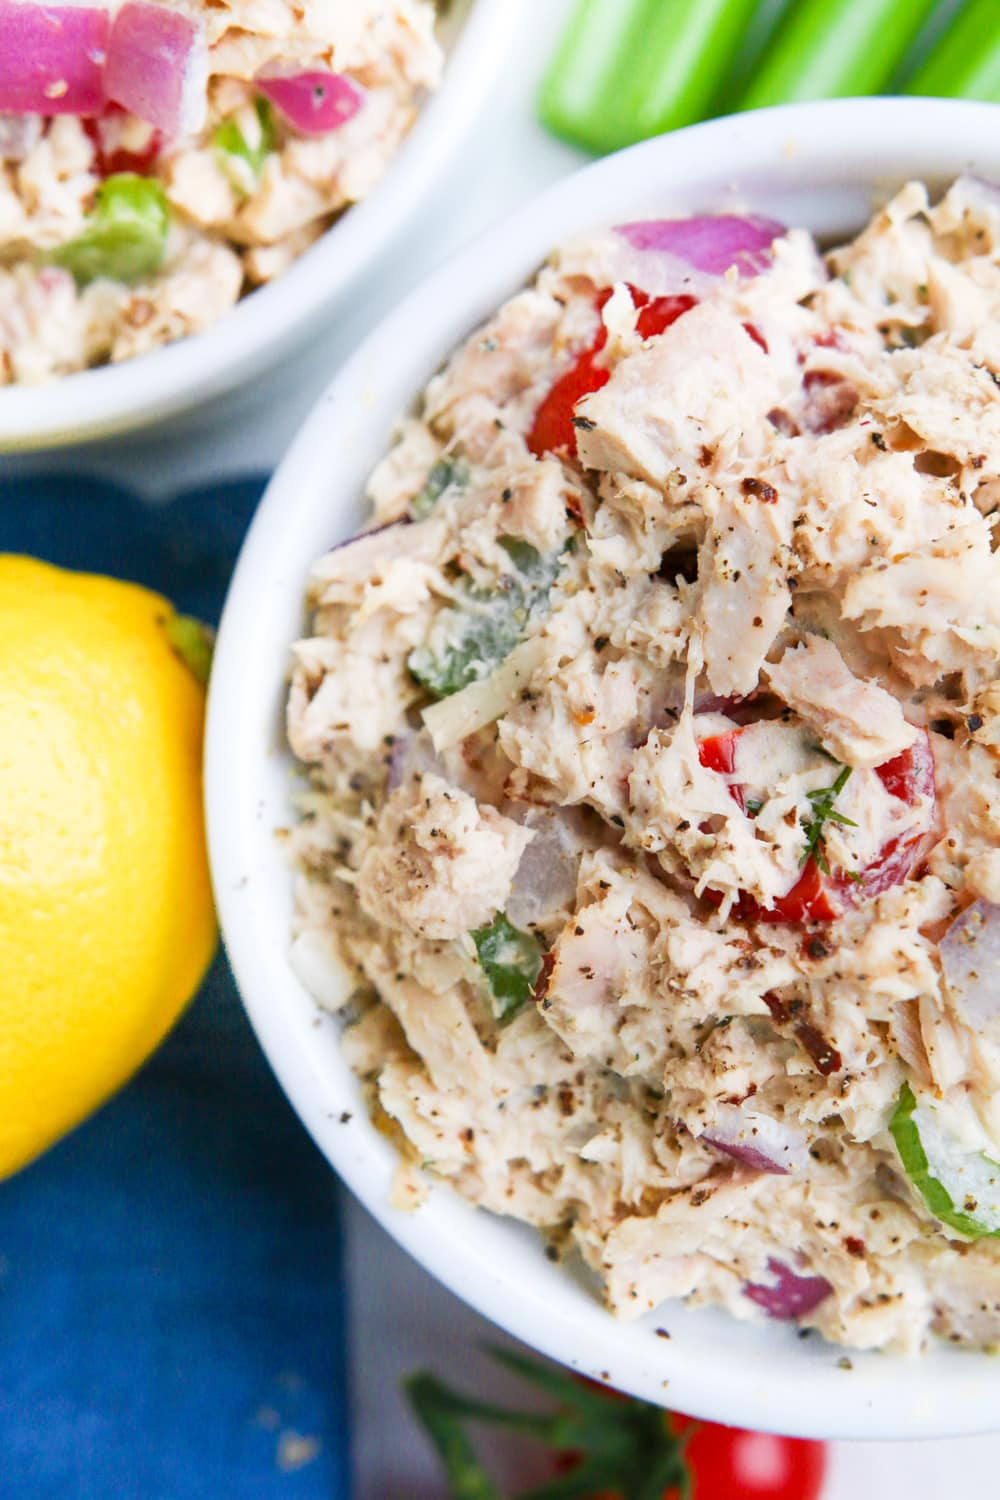 Two bowls of low carb tuna salad with a lemon, celery, and a blue napkin next to them.